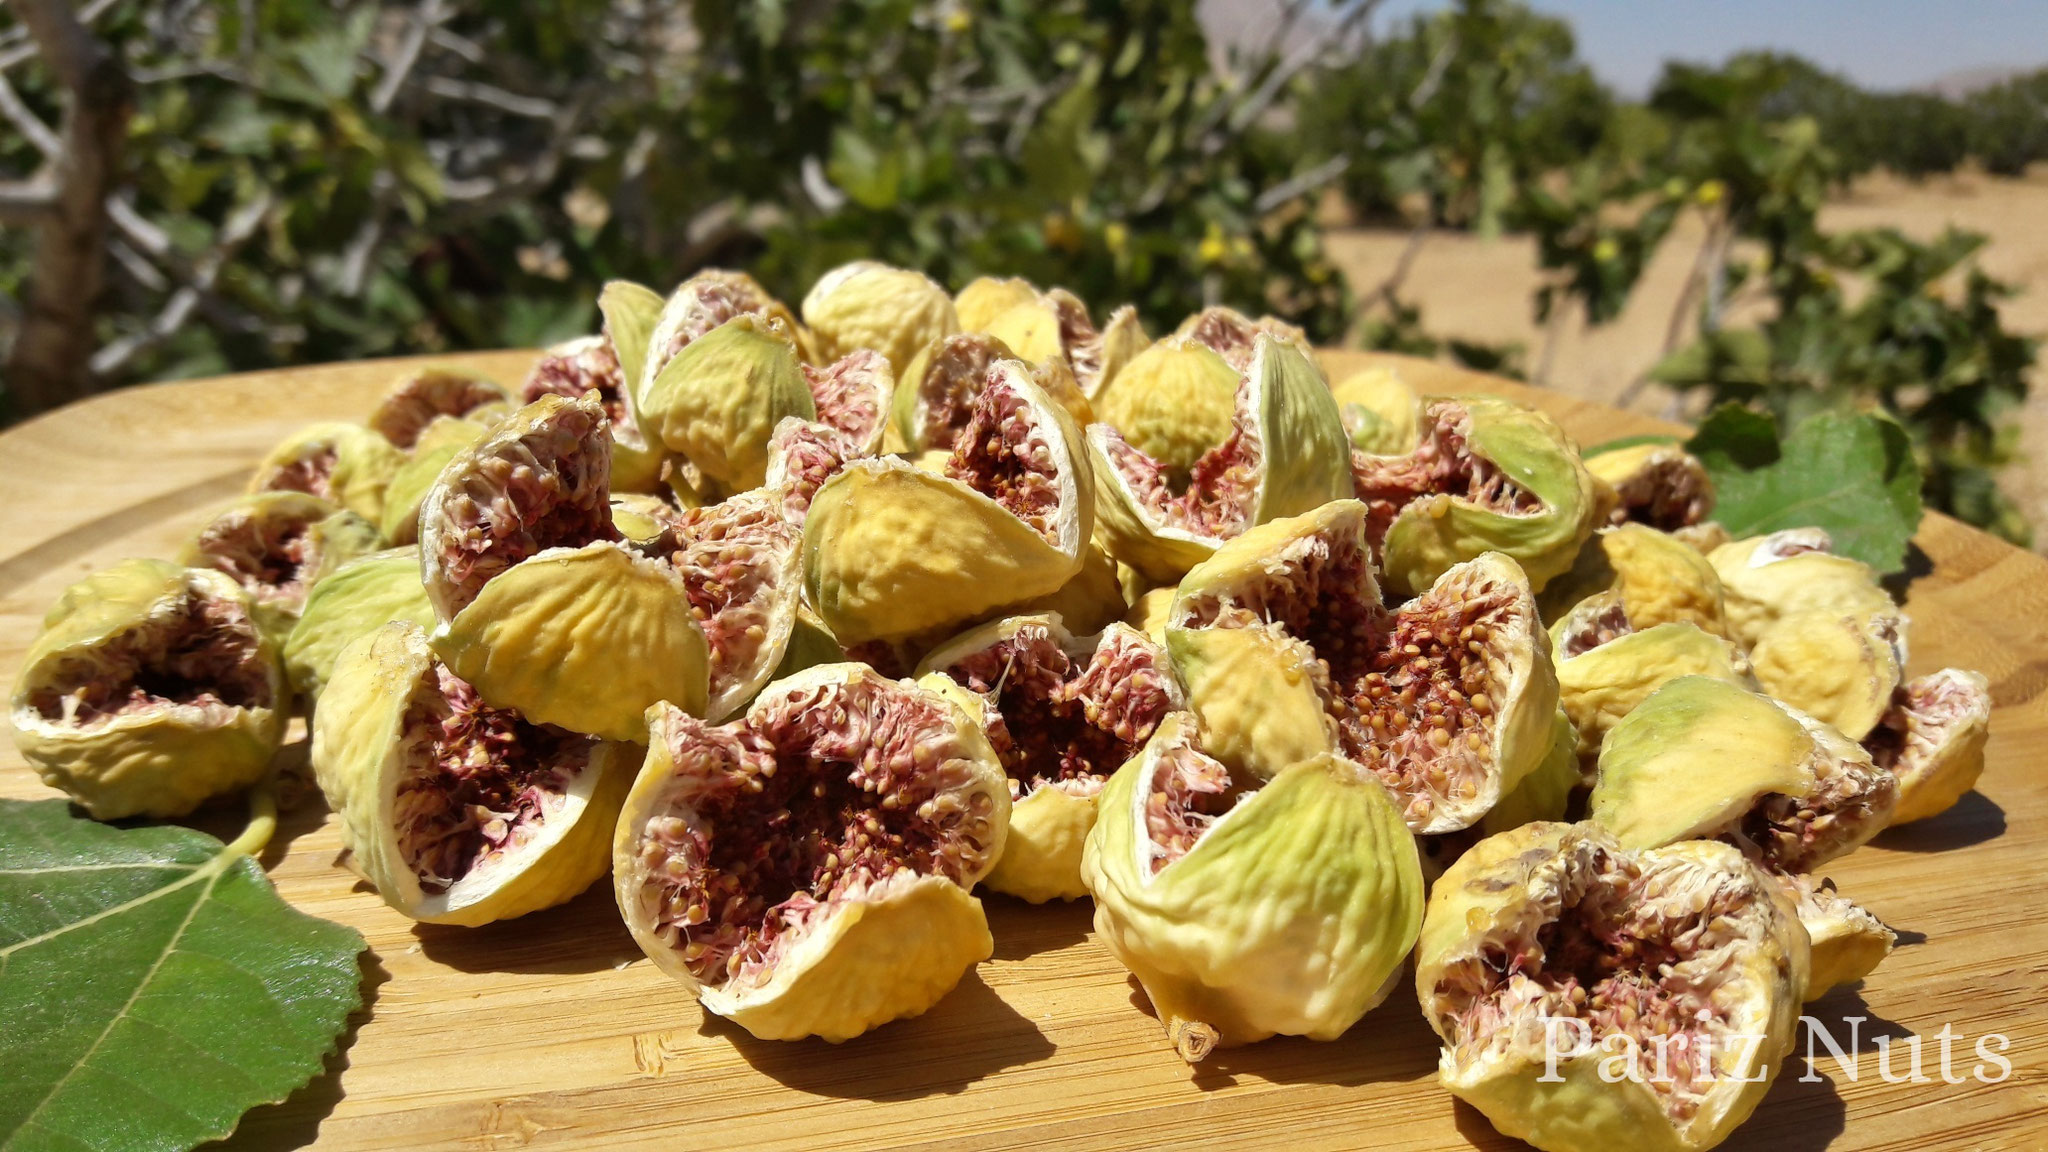 Iranian Dried Figs (open mouth AAA)